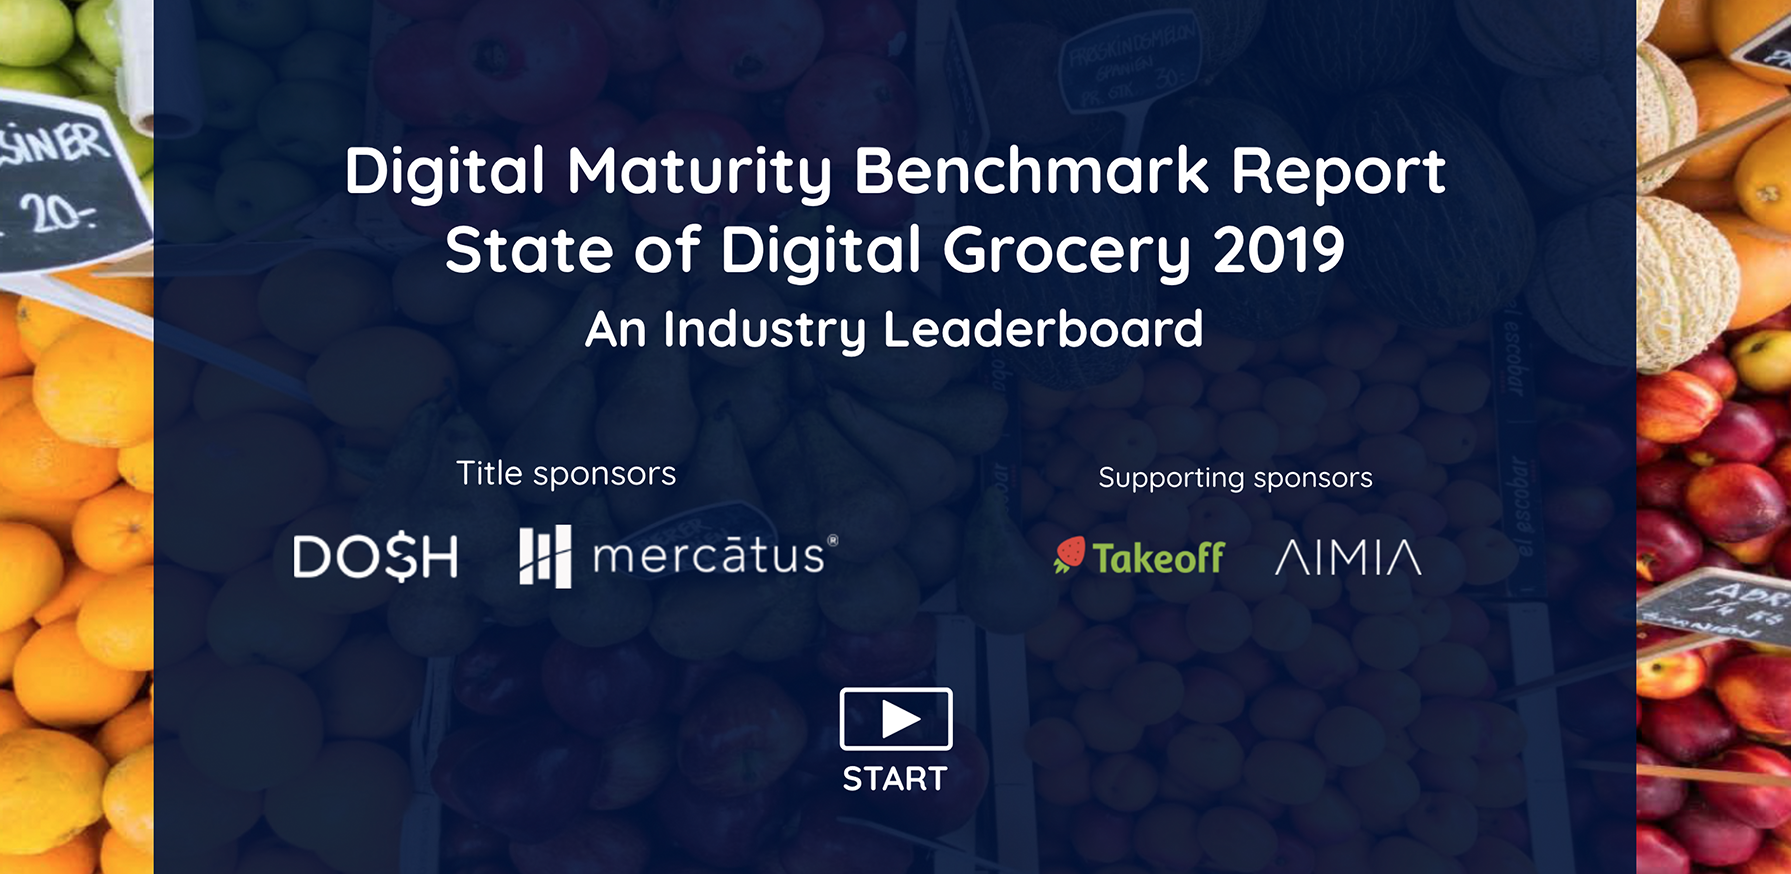 Digital Maturity Benchmark Report: State of Digital Grocery 2019